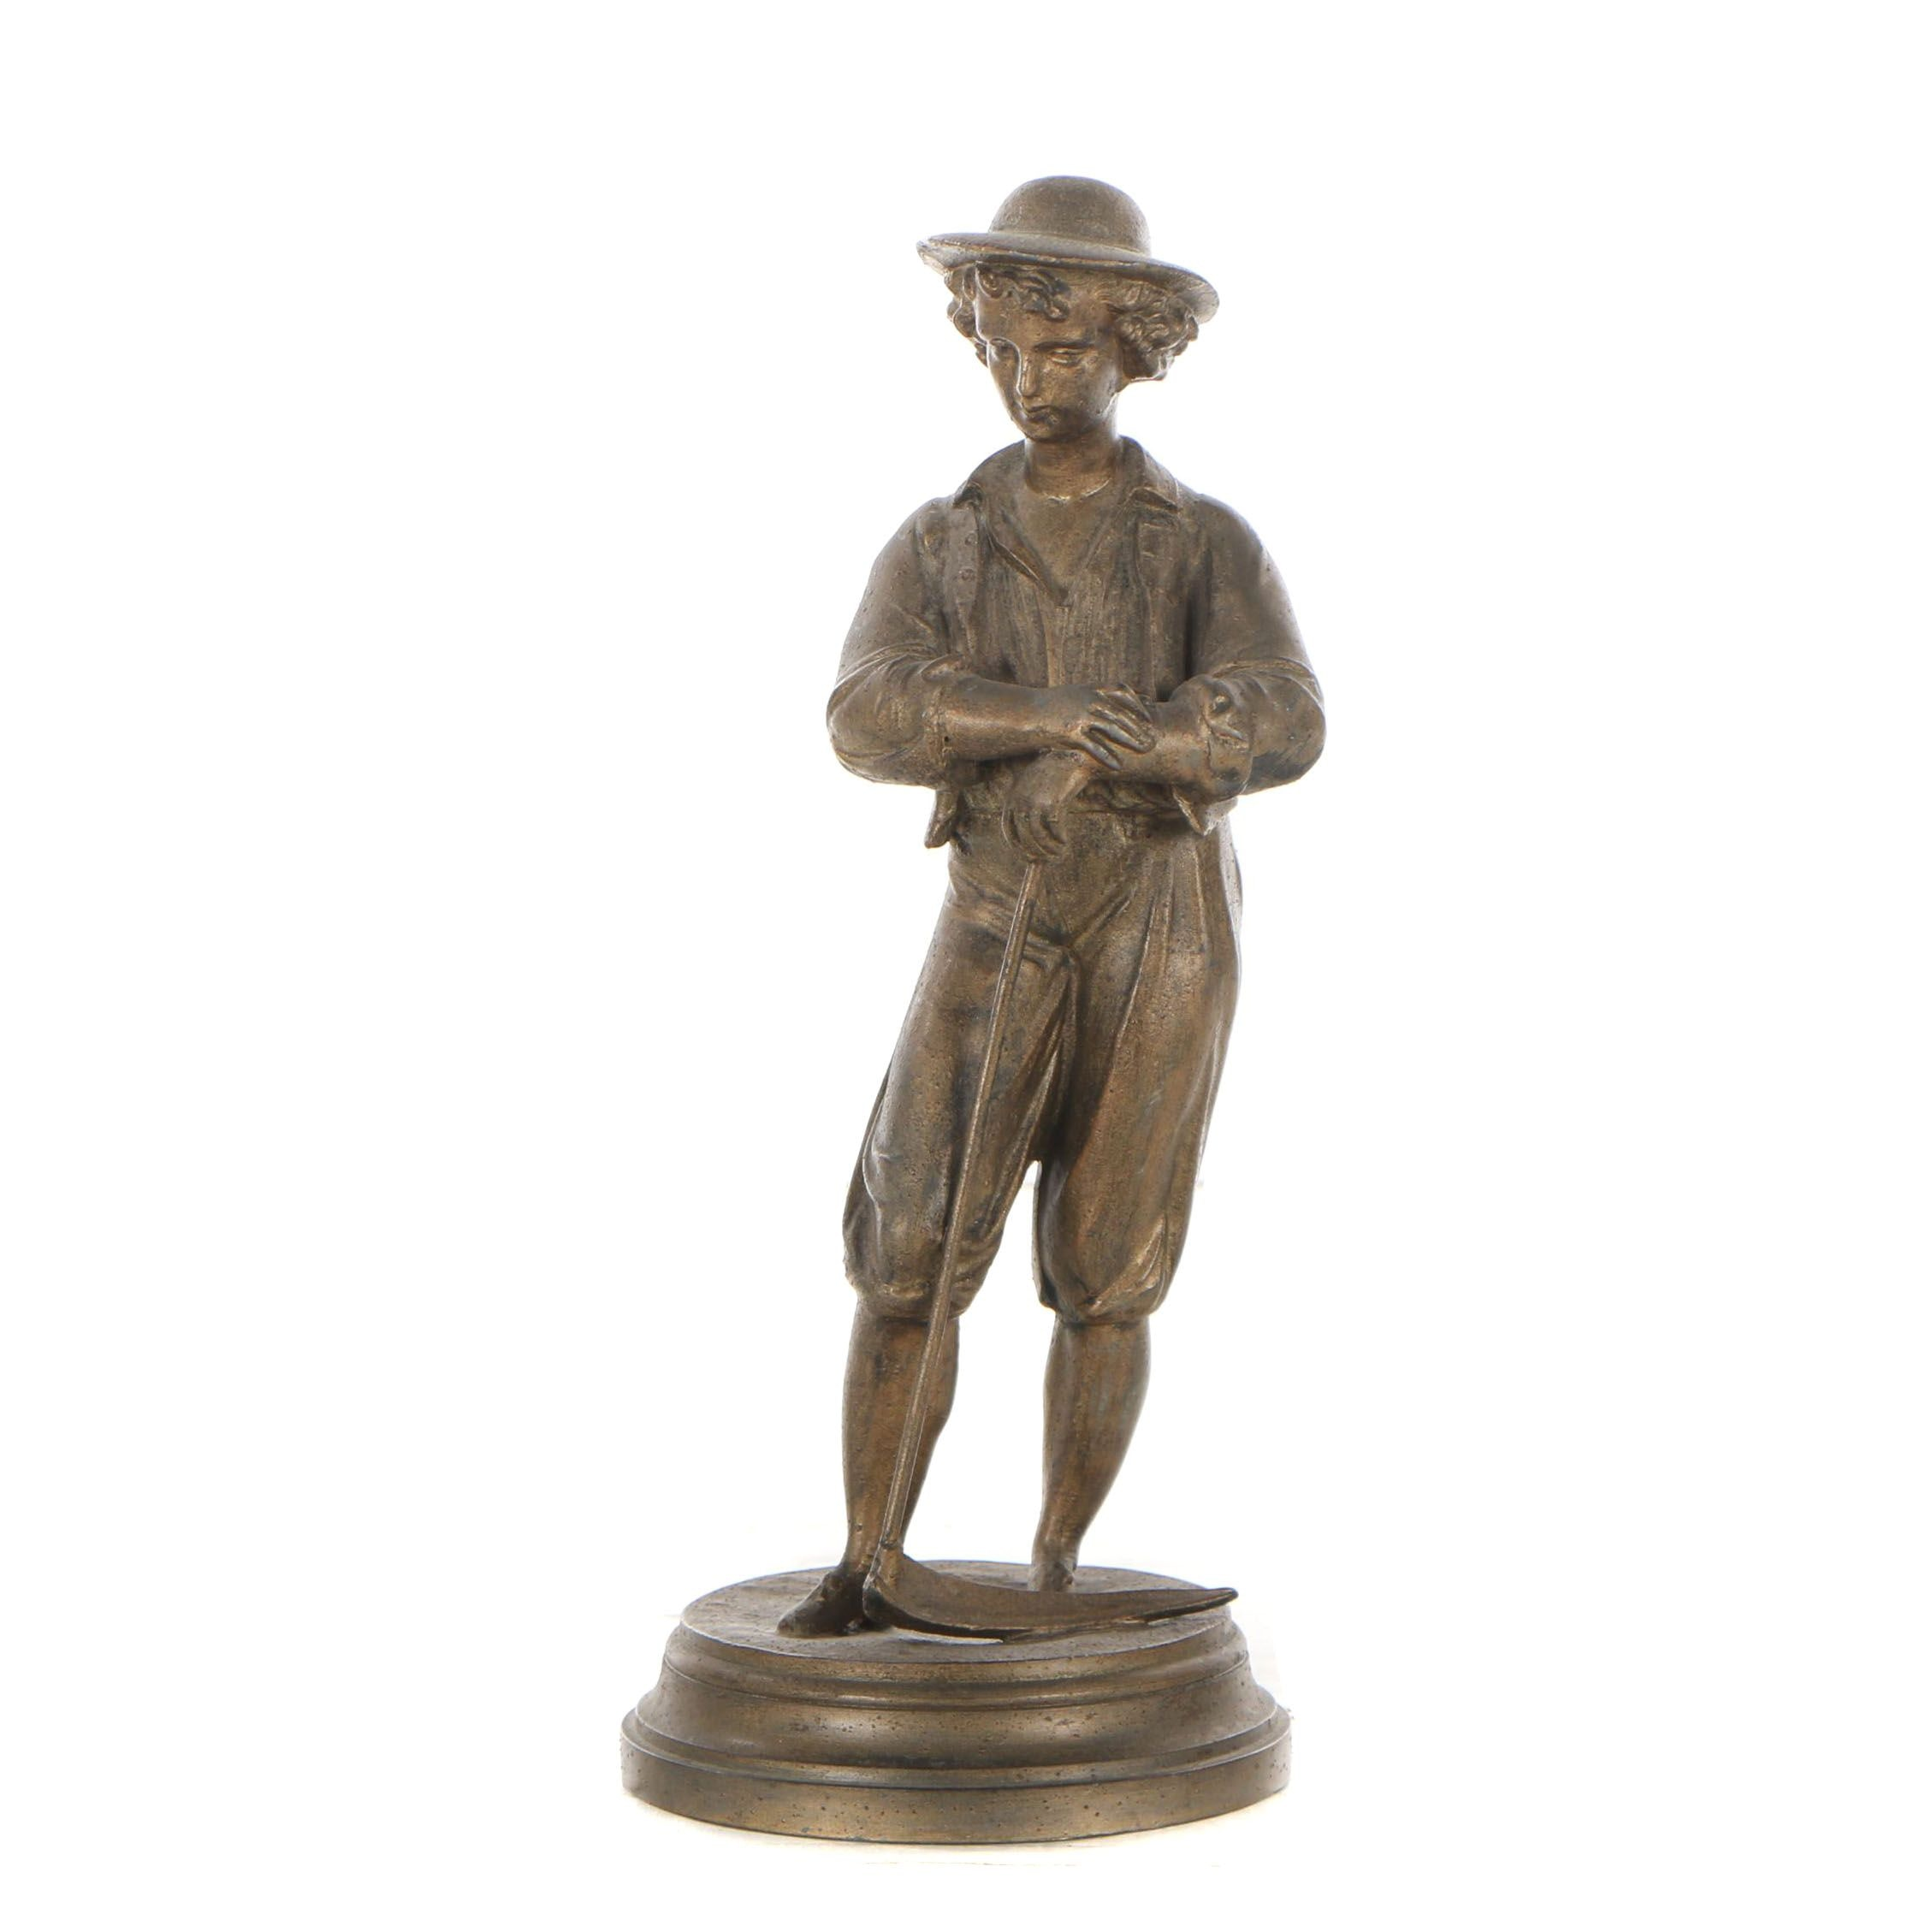 French Peasant Spelter Sculpture, Early 20th Century